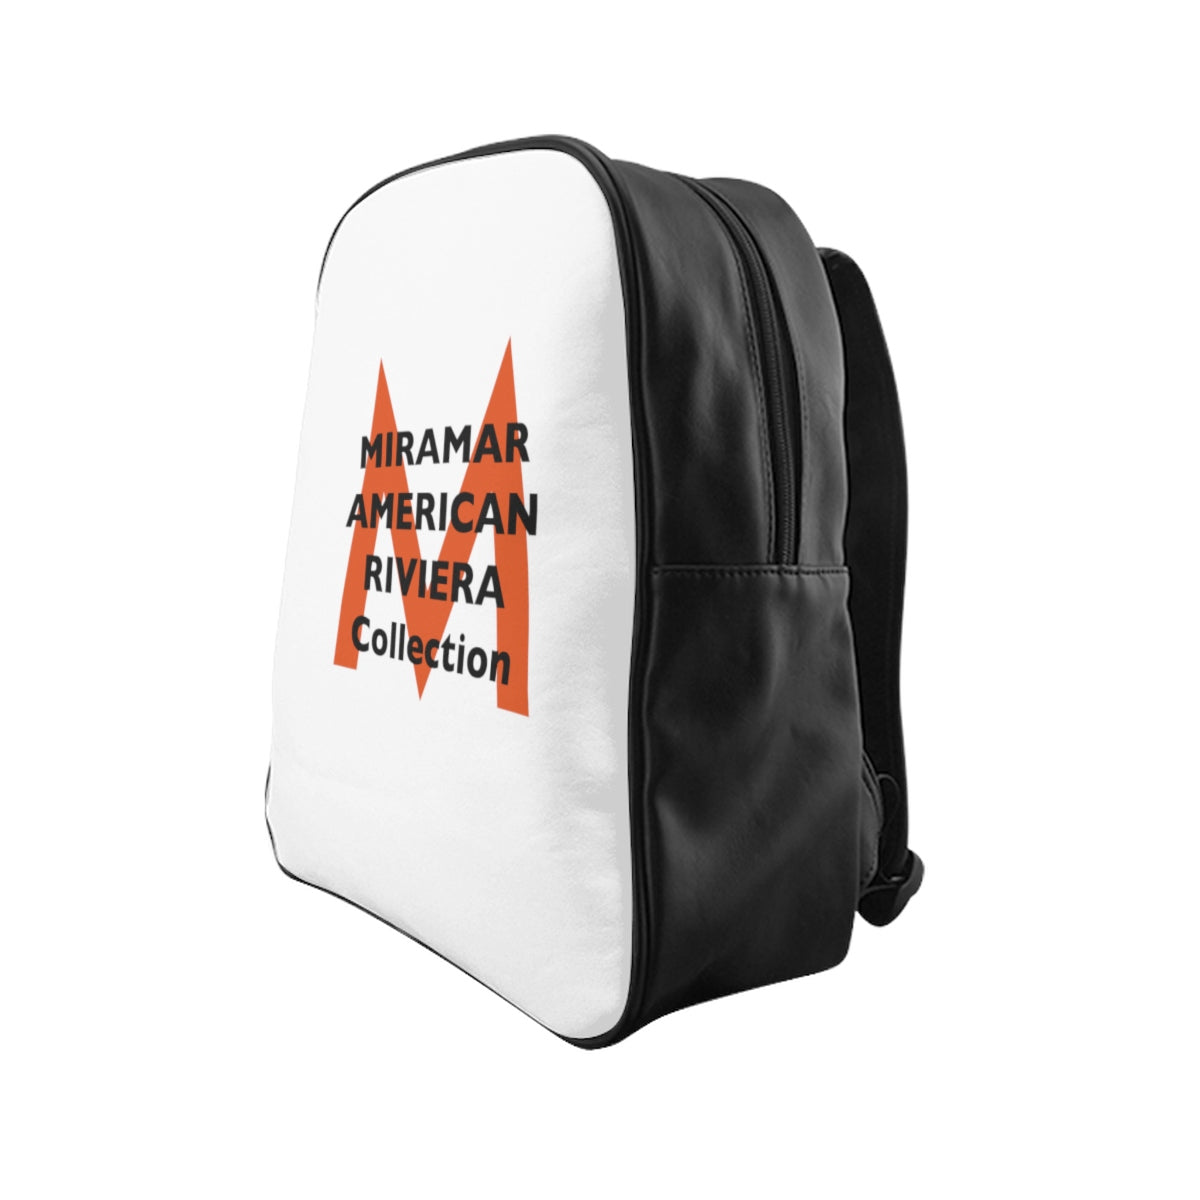 Miramar® American Riviera Collection Backpack